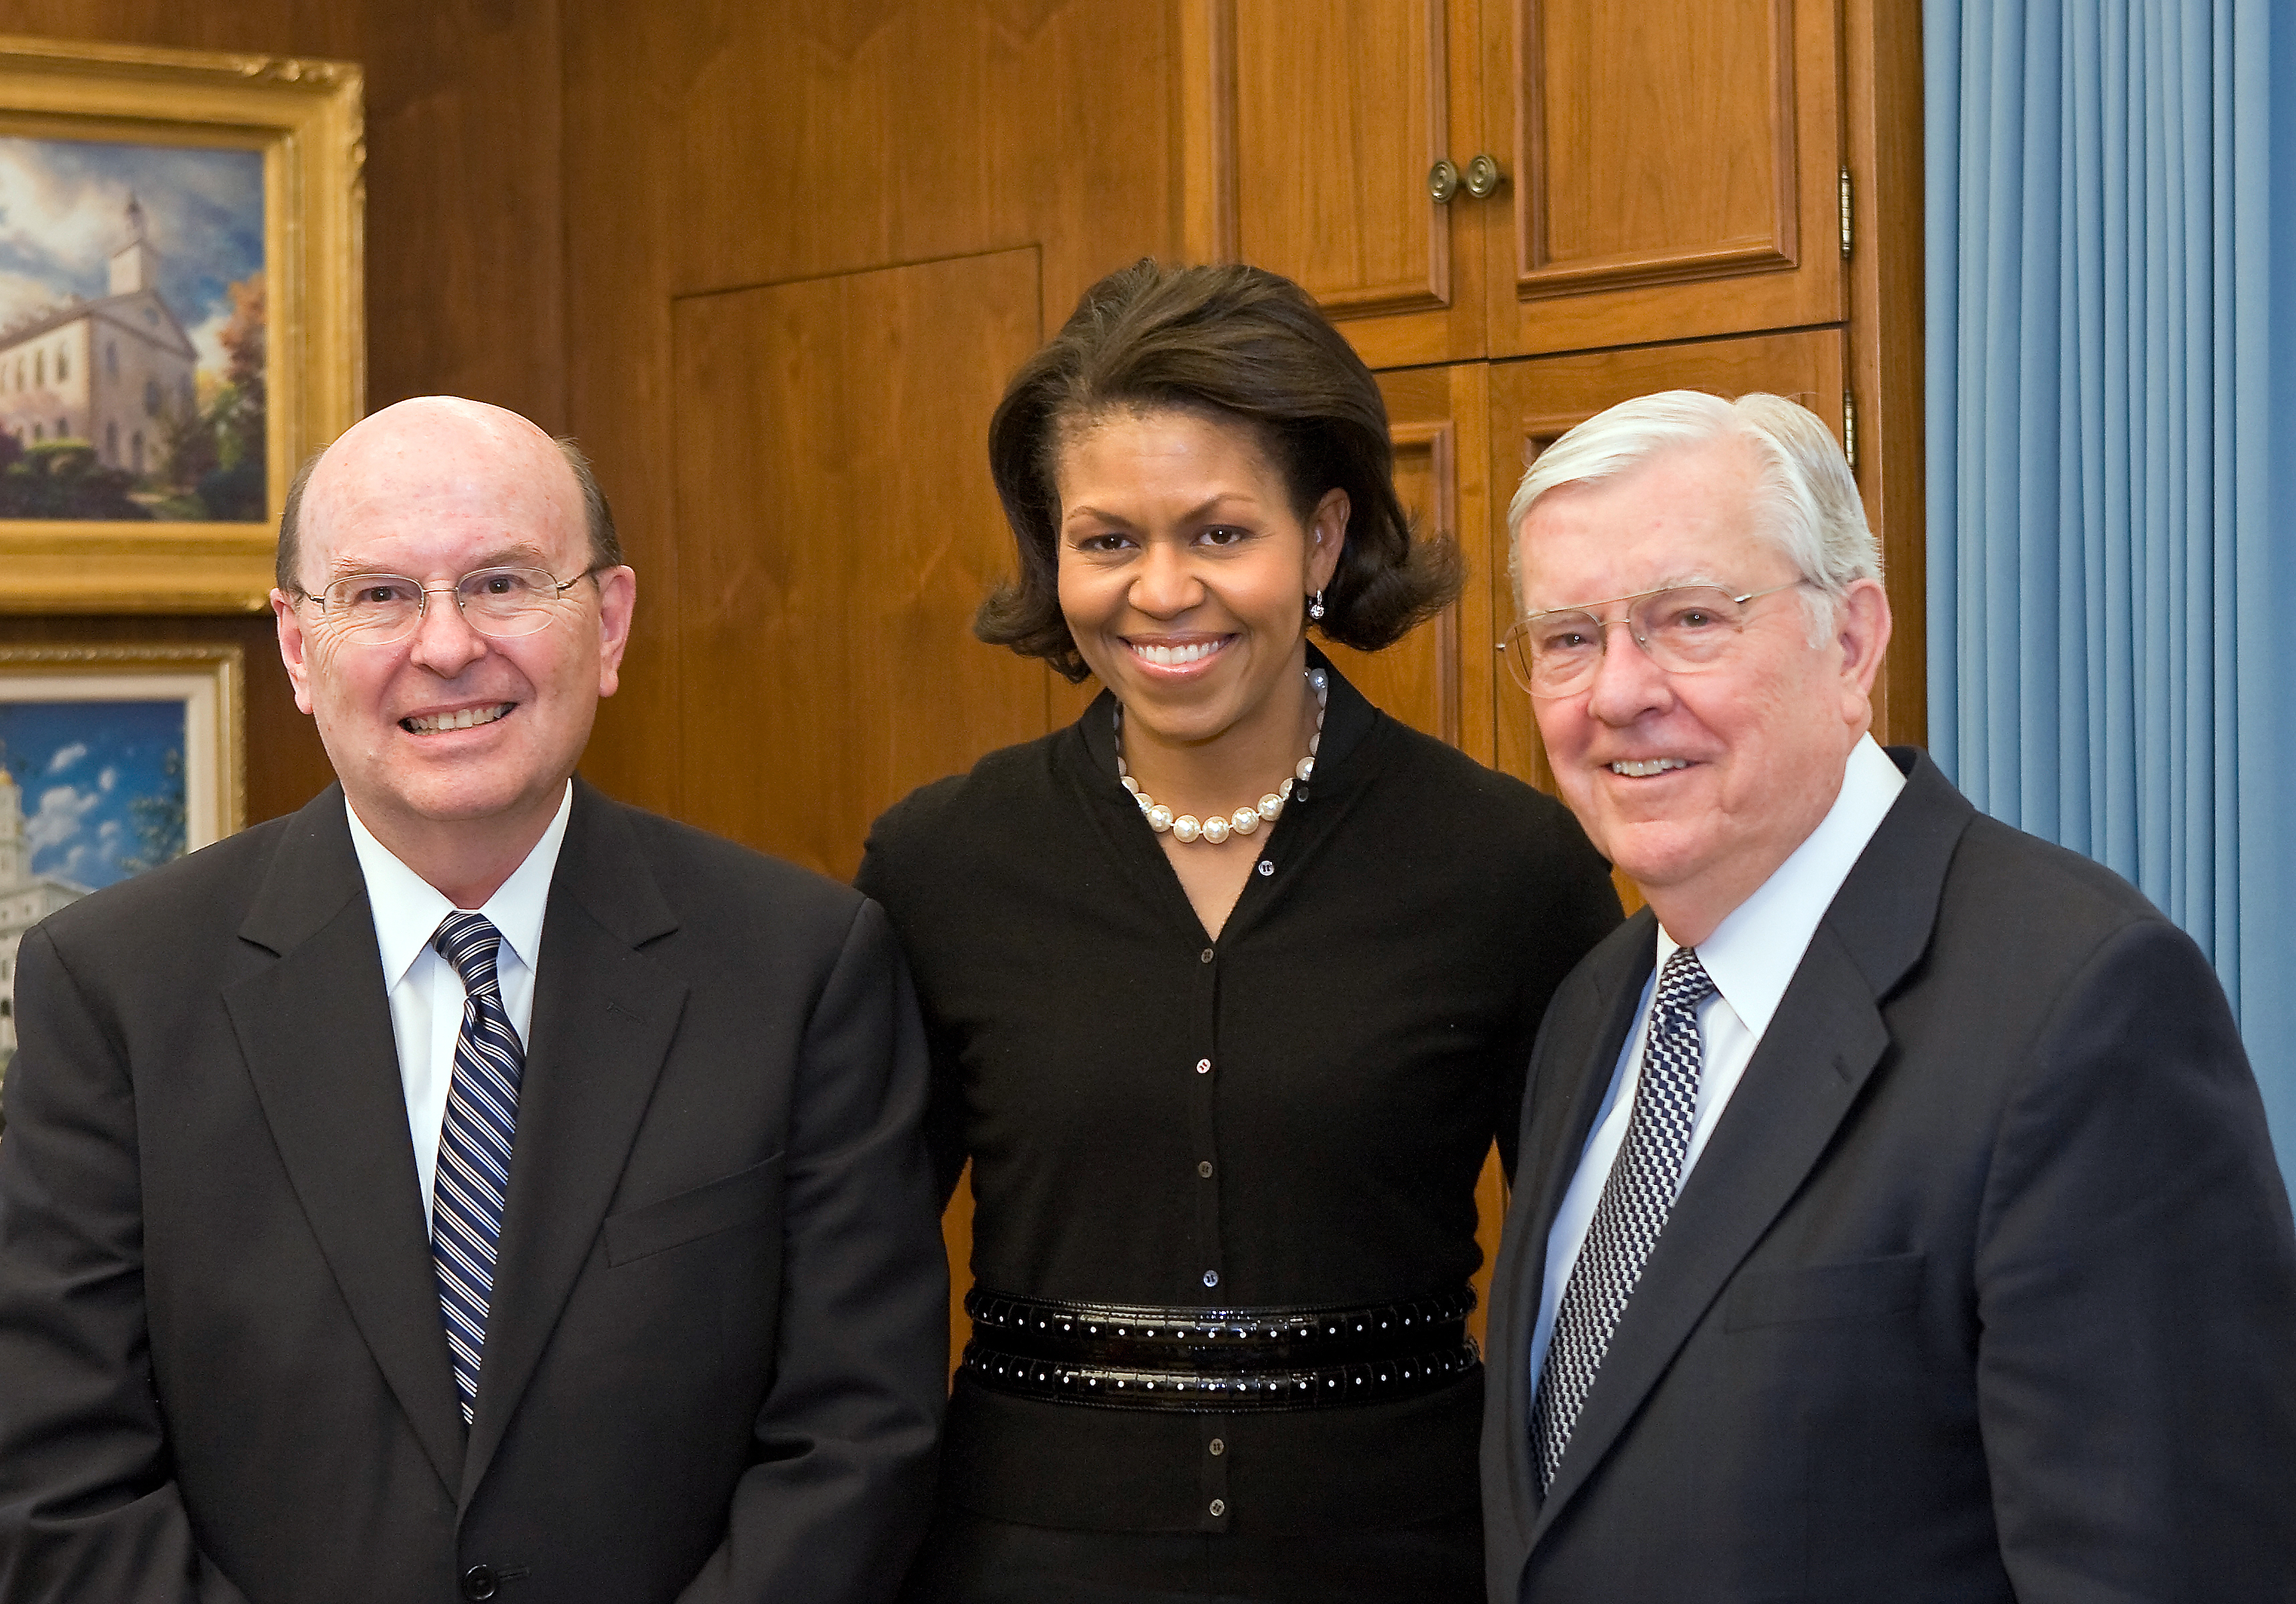 From left, Elder Quentin L. Cook, Michelle Obama and Elder M. Russell Ballard, are photographed as the former First Lady visits Church headquarters in February 2008.